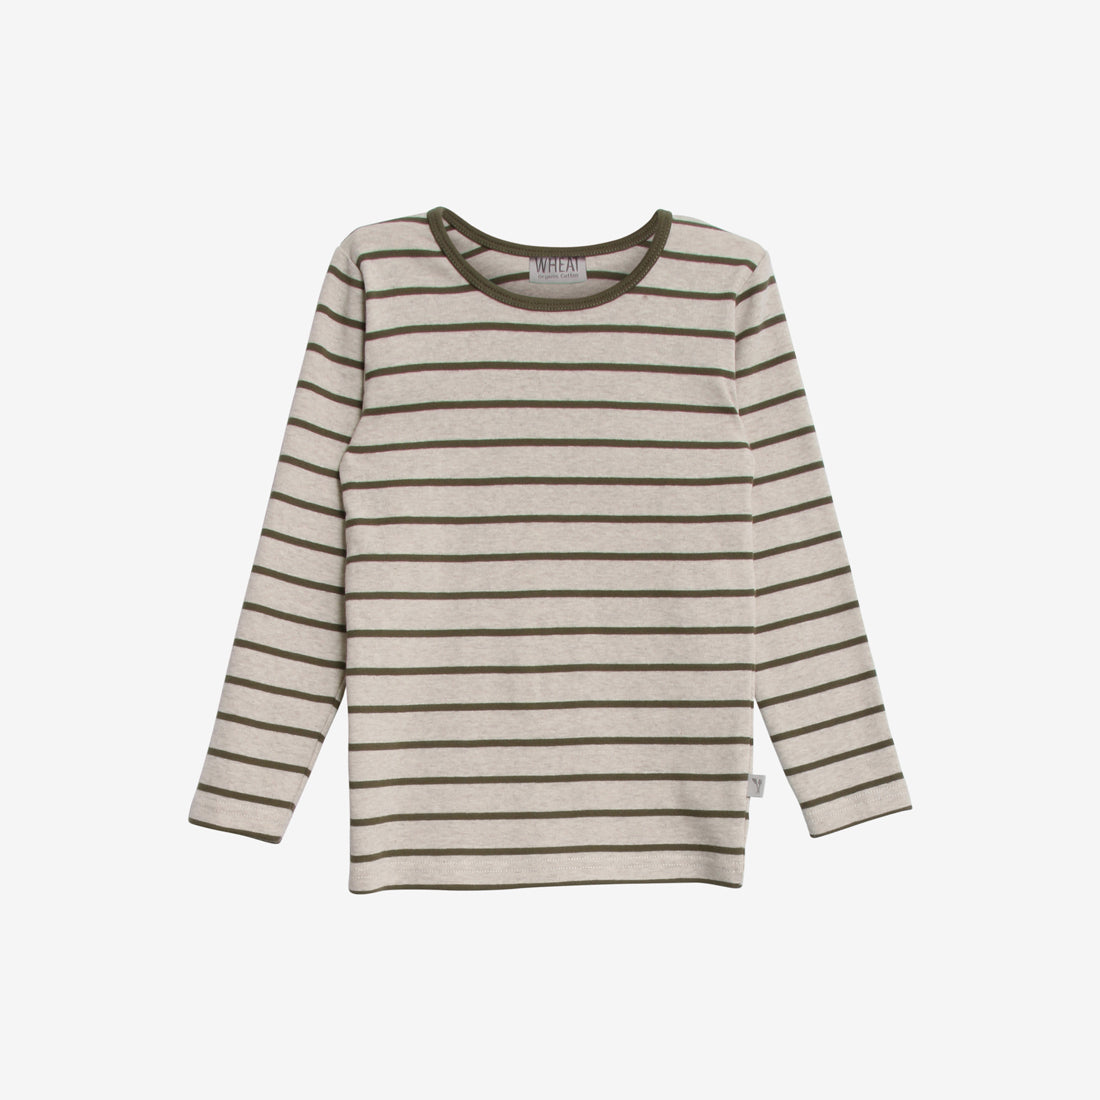 Stripes Organic L/S Tee - Army/Ecru